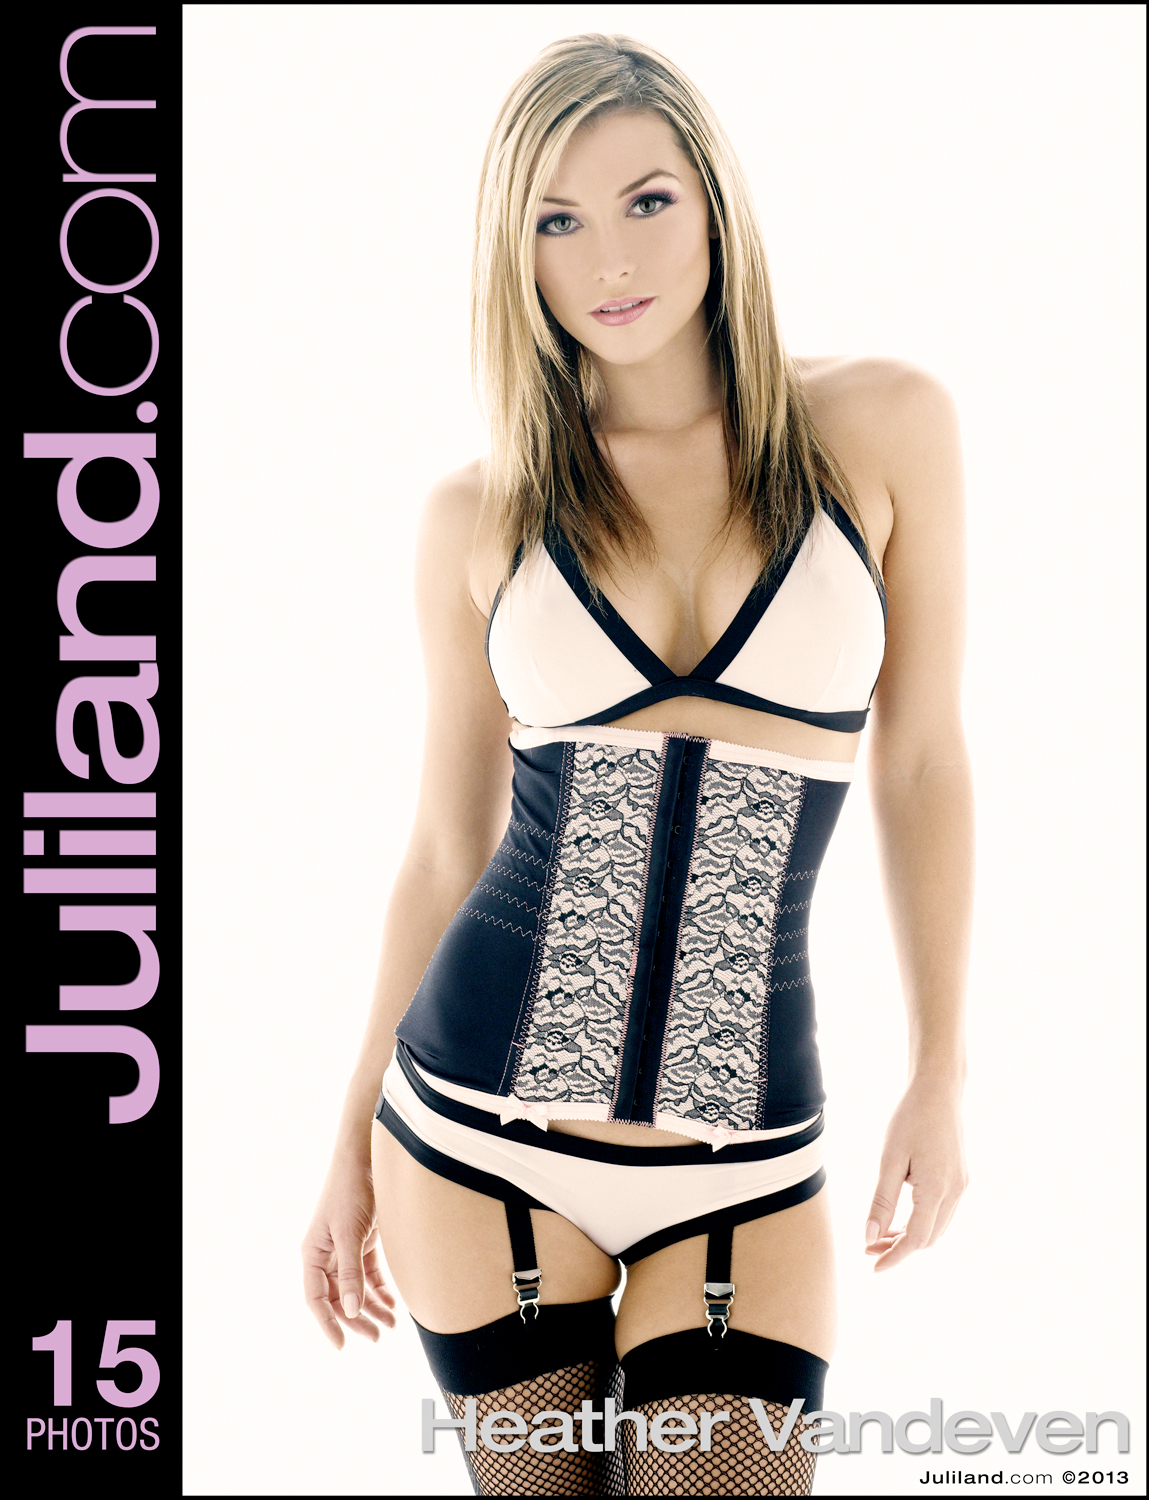 Juliland_Heather Vandeven 027